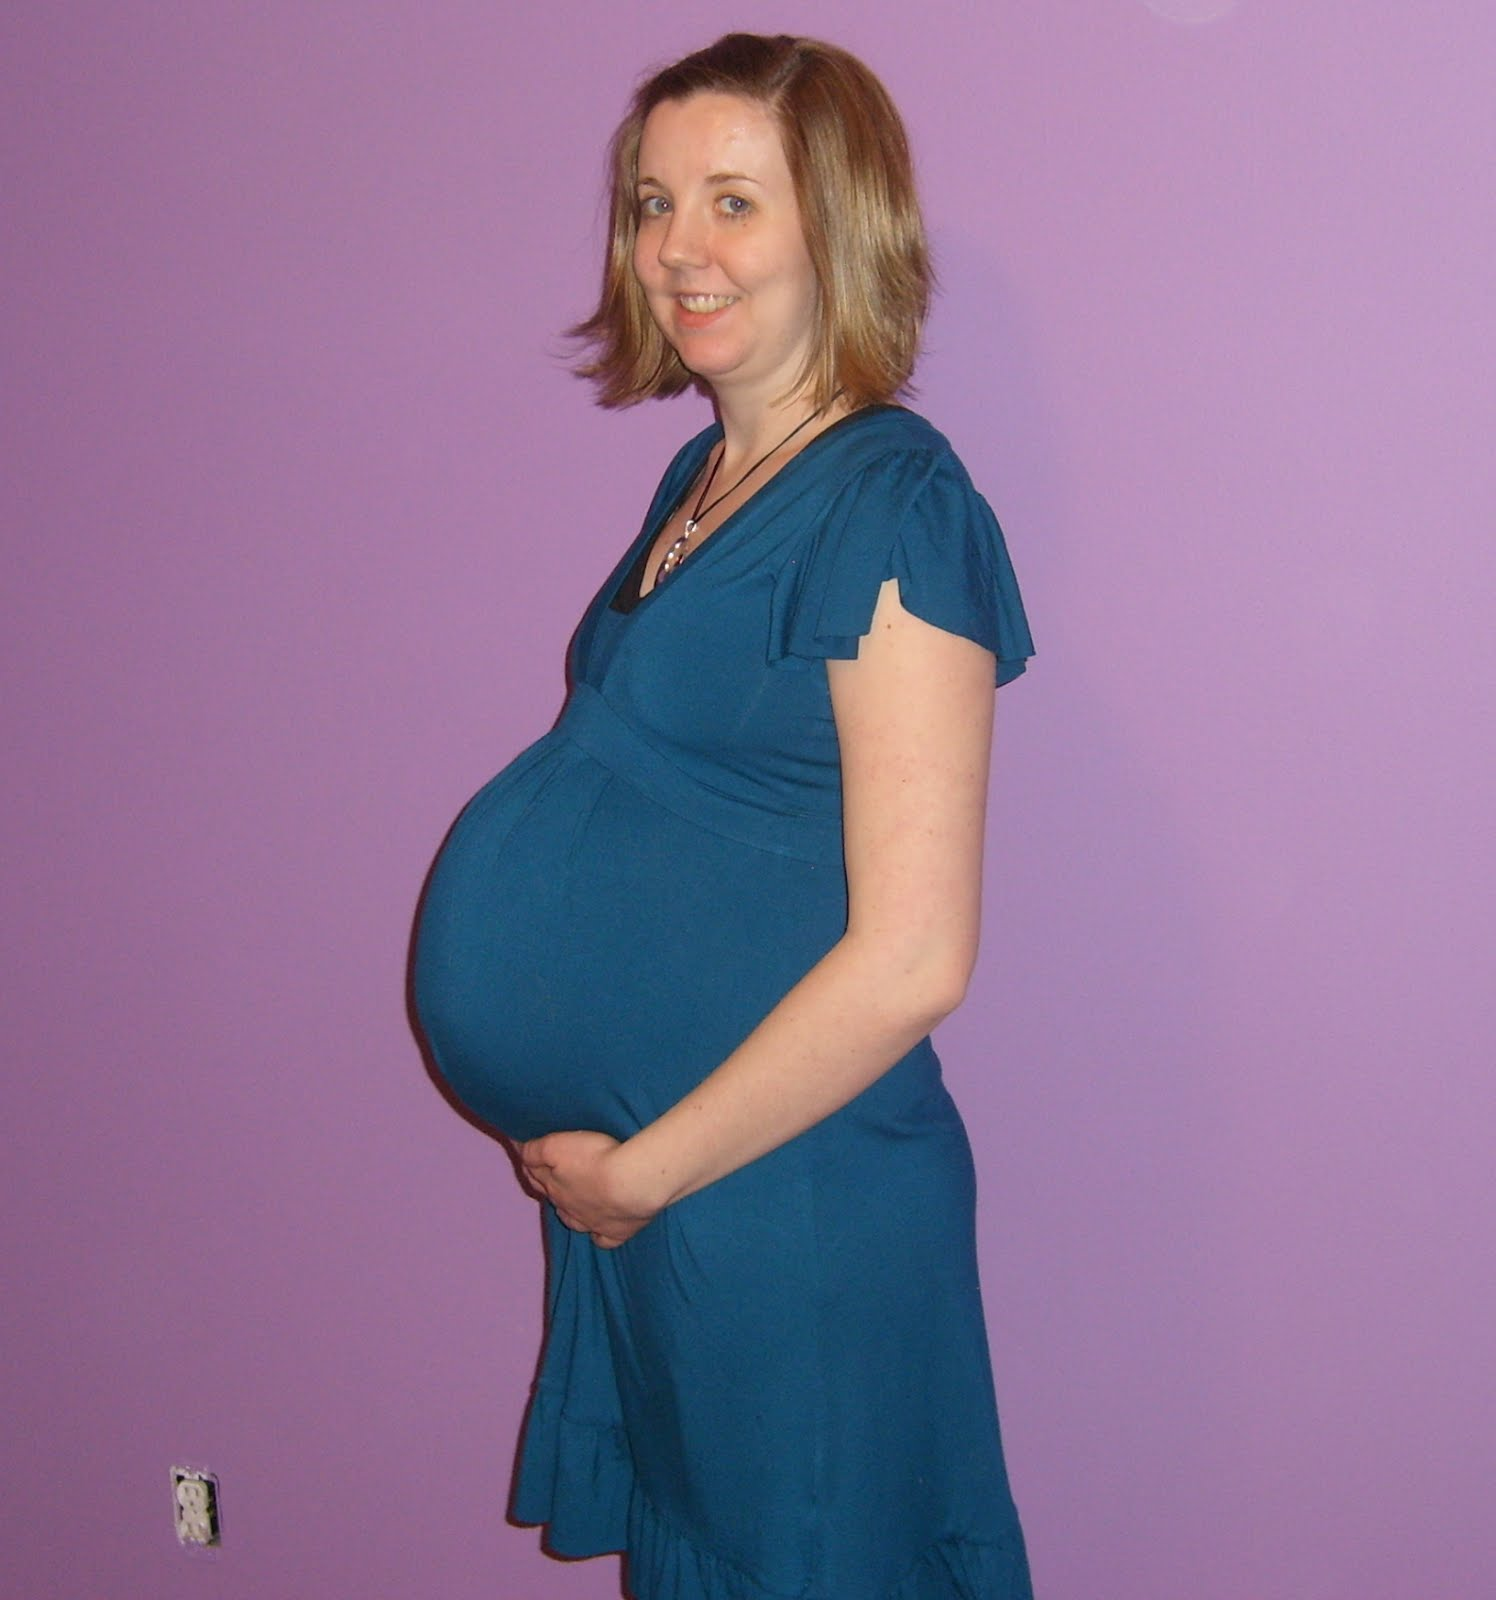 now at 33 weeks pregnant,